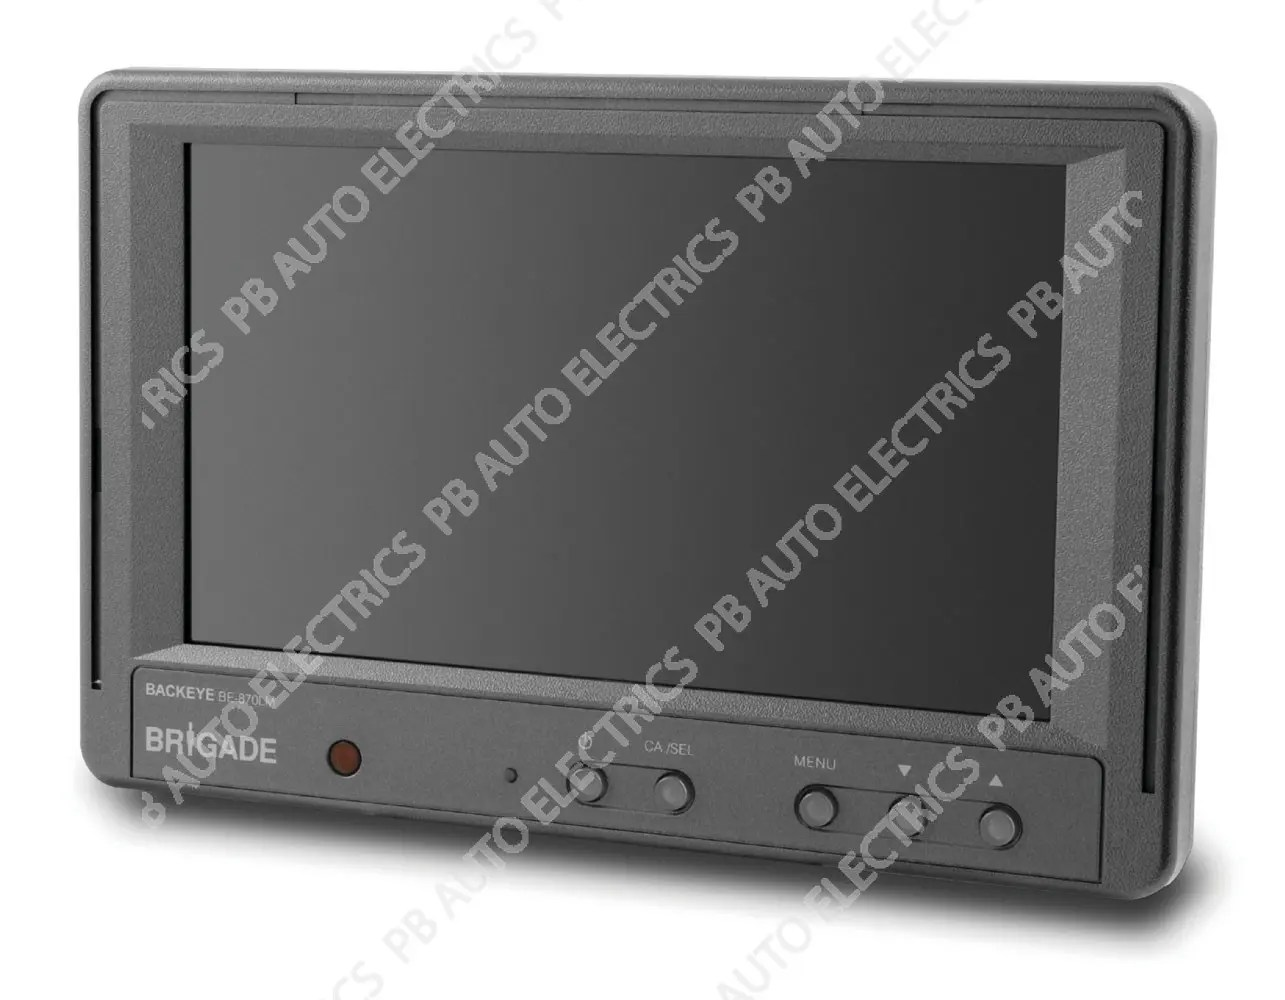 hight resolution of brigade be 870lm elite range 7 digital lcd monitor 2705a